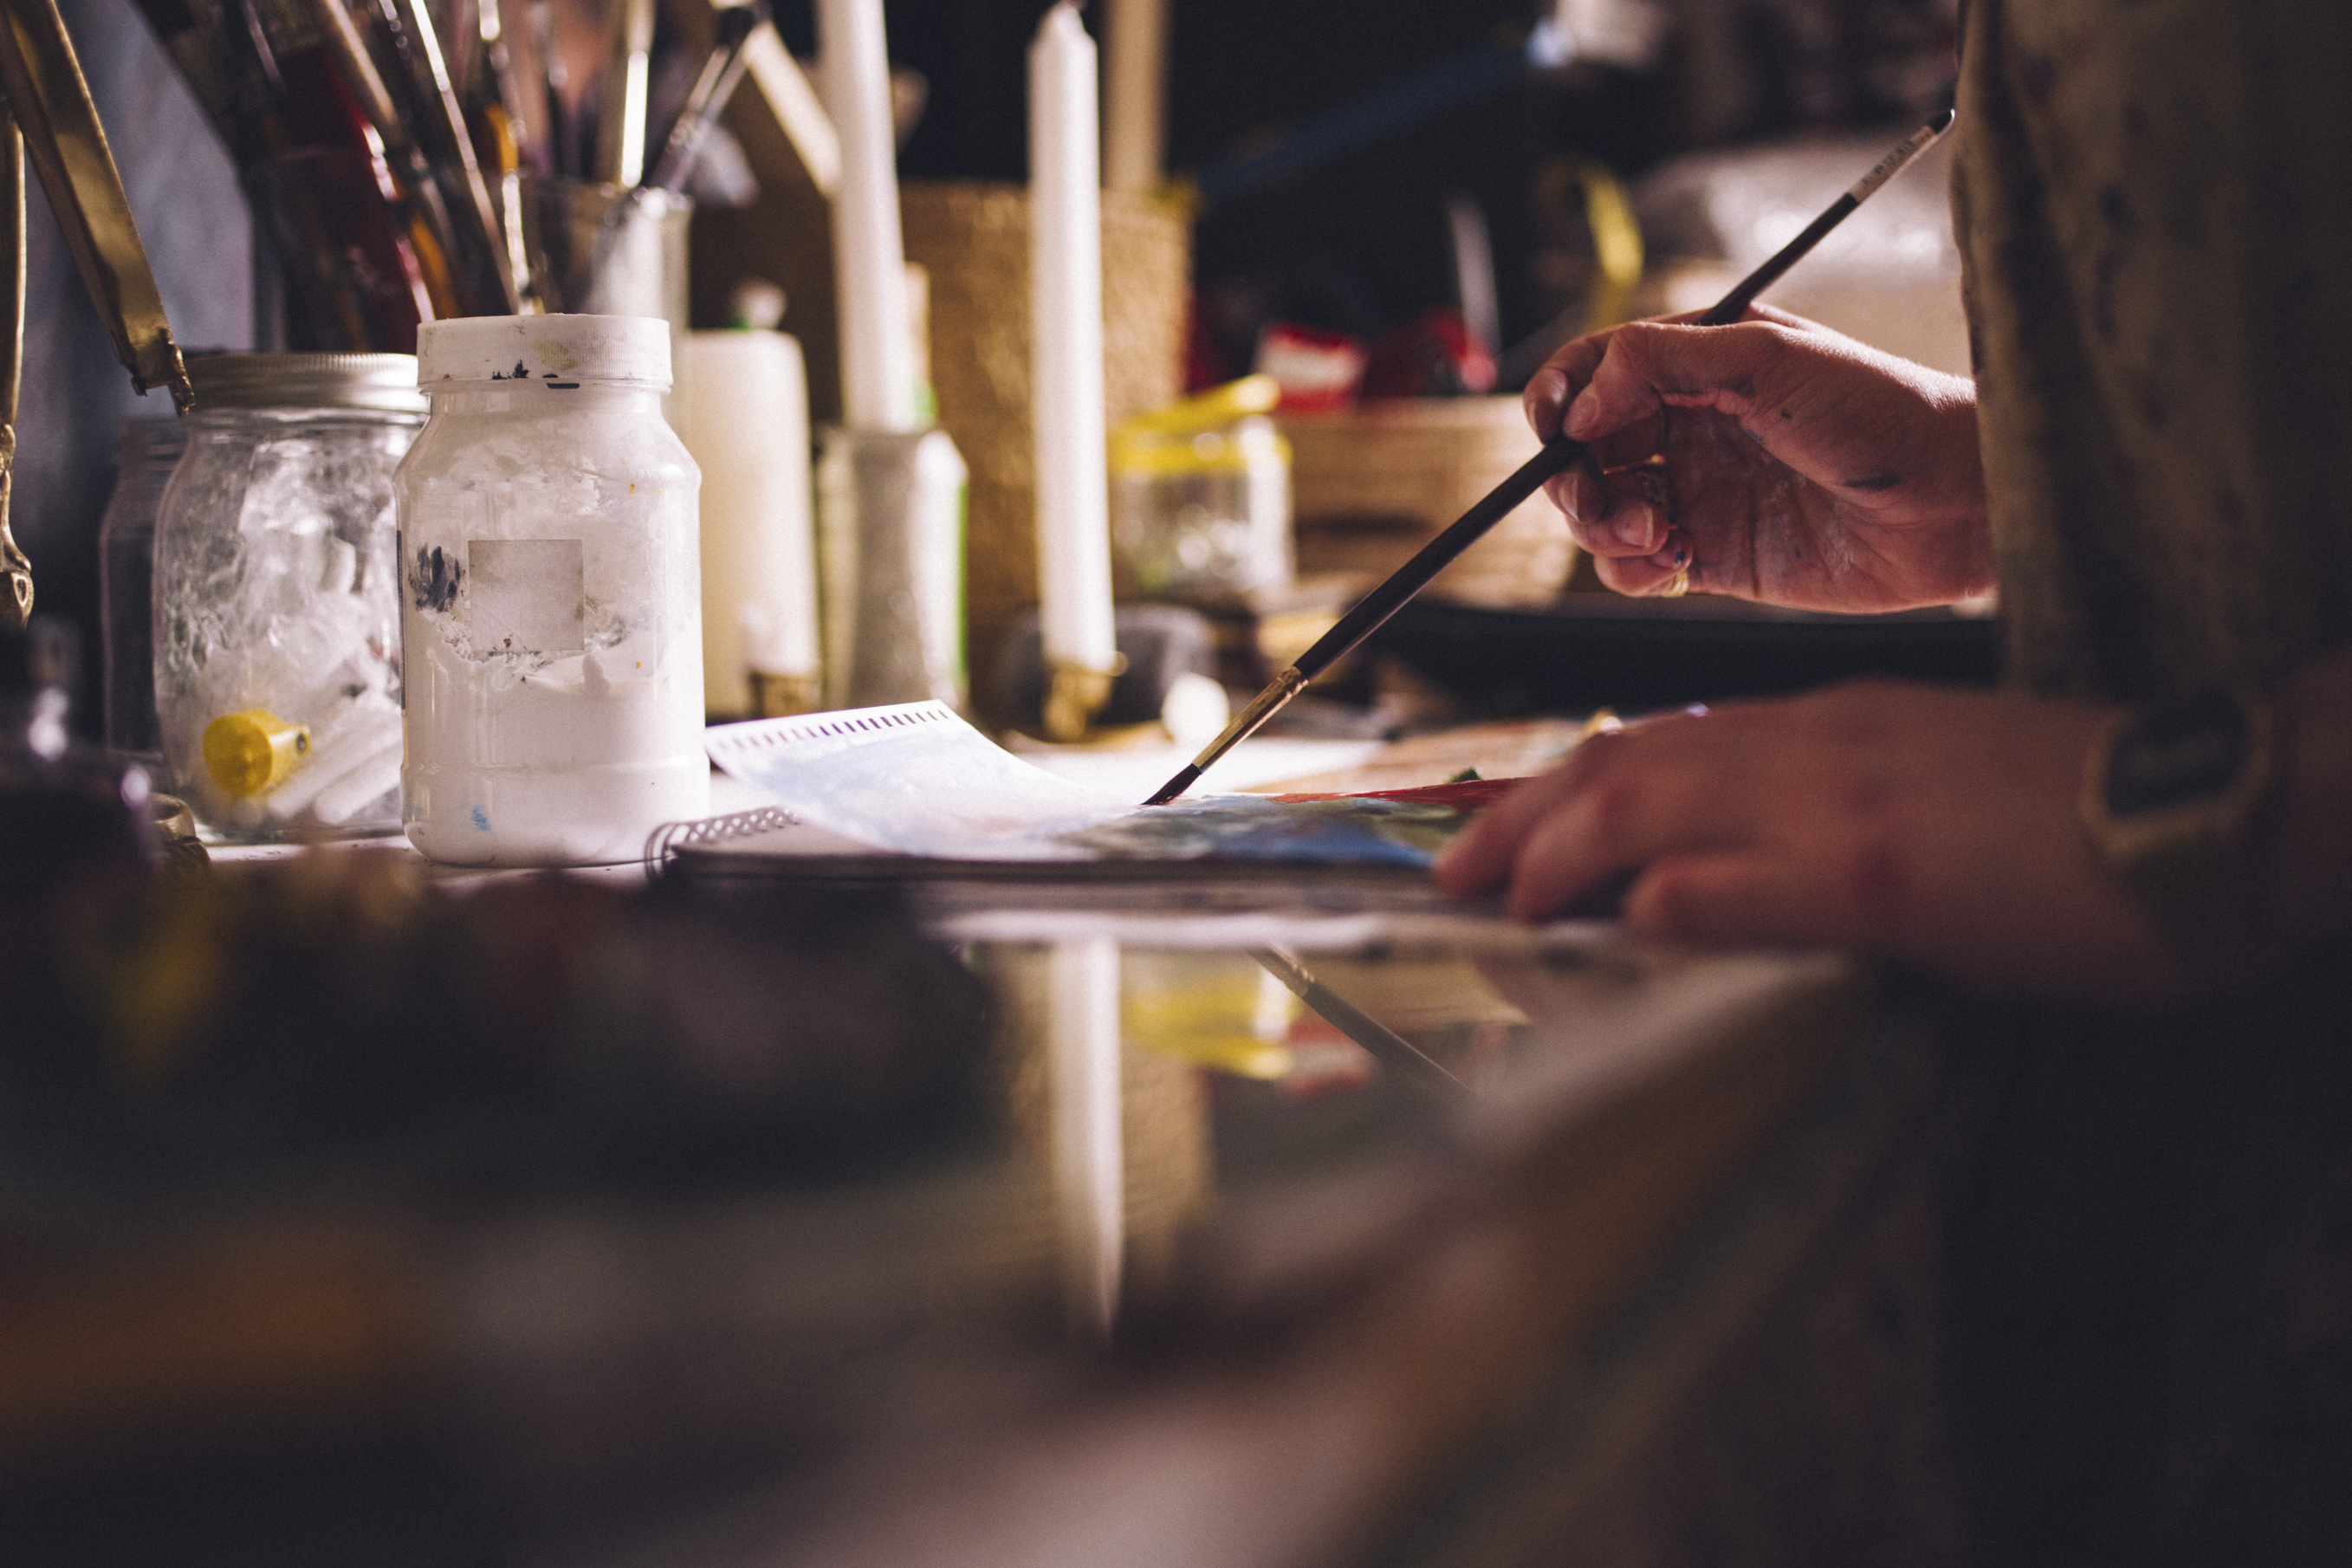 Cropped image of an artist's hands using a fine paintbrush while painting on paper at a desk with art and craft equipment all around